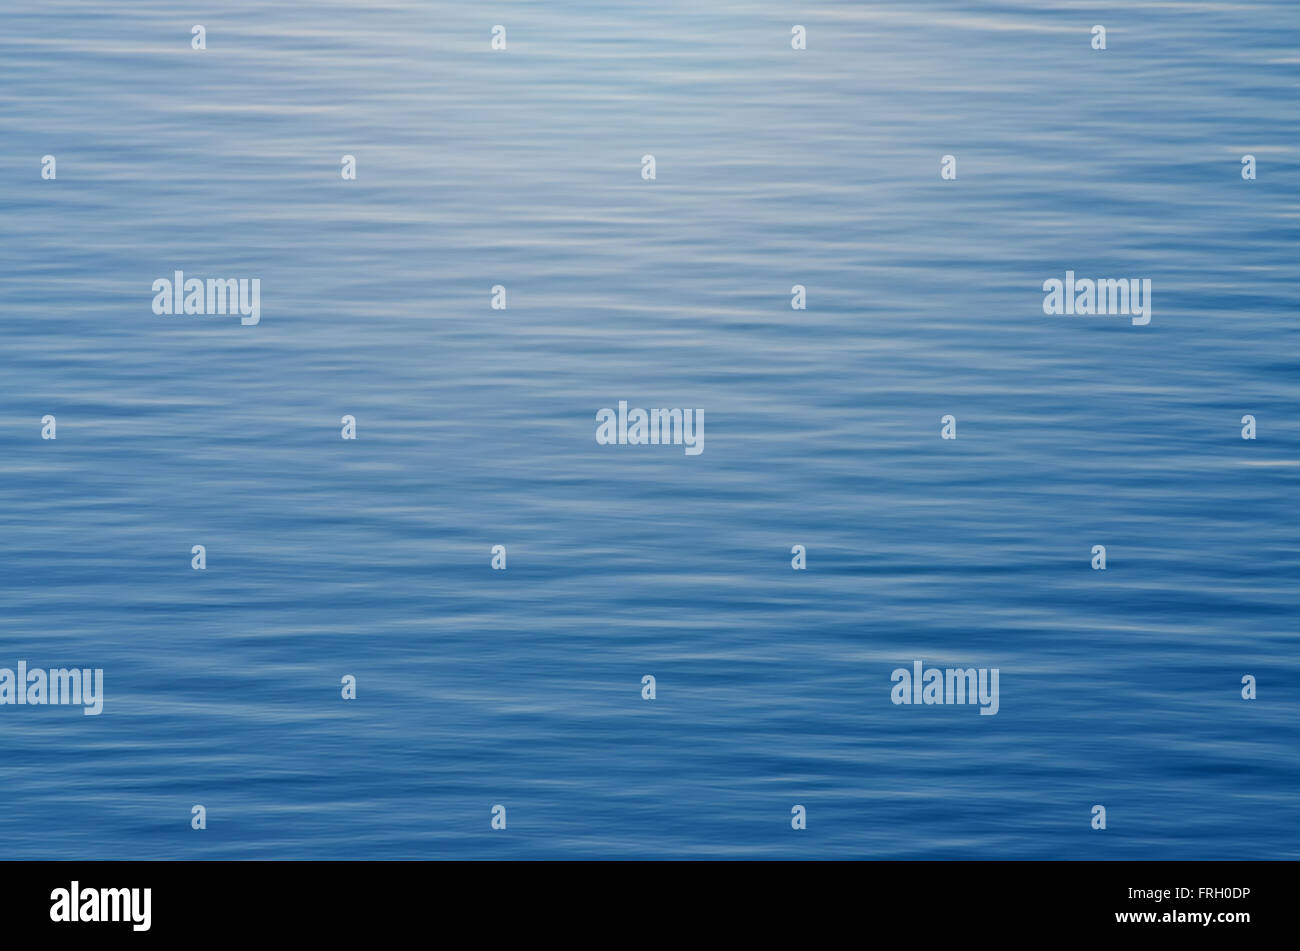 Abstract water background with vignette - Stock Image